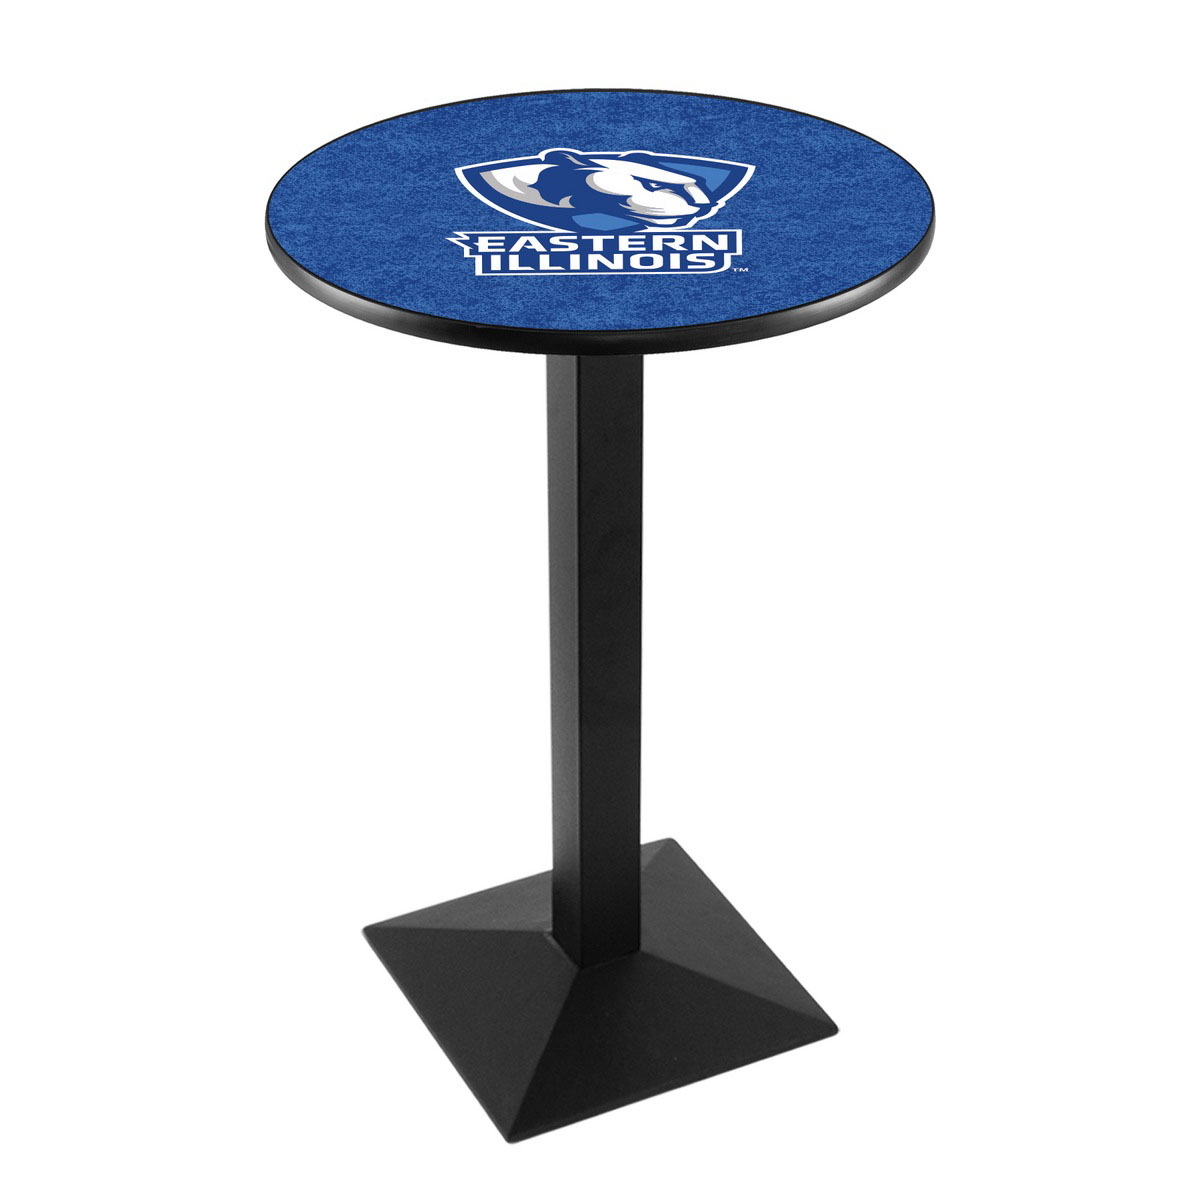 Exquisite Eastern Illinois University Logo Pub Bar Table Square Stand Product Photo